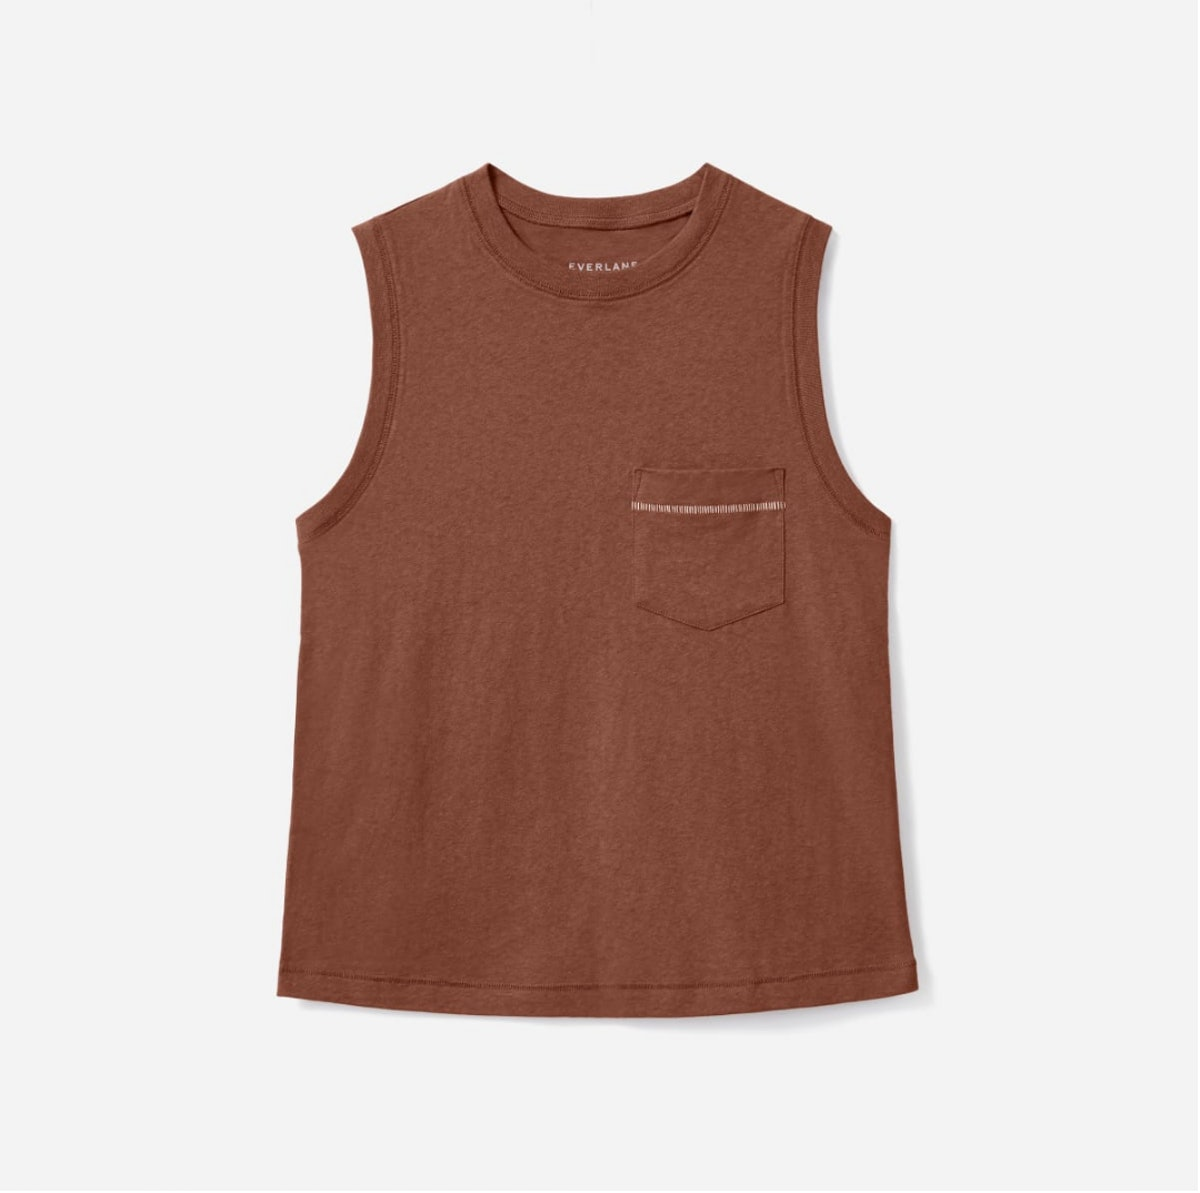 Everlane's ReCotton Muscle Tank.